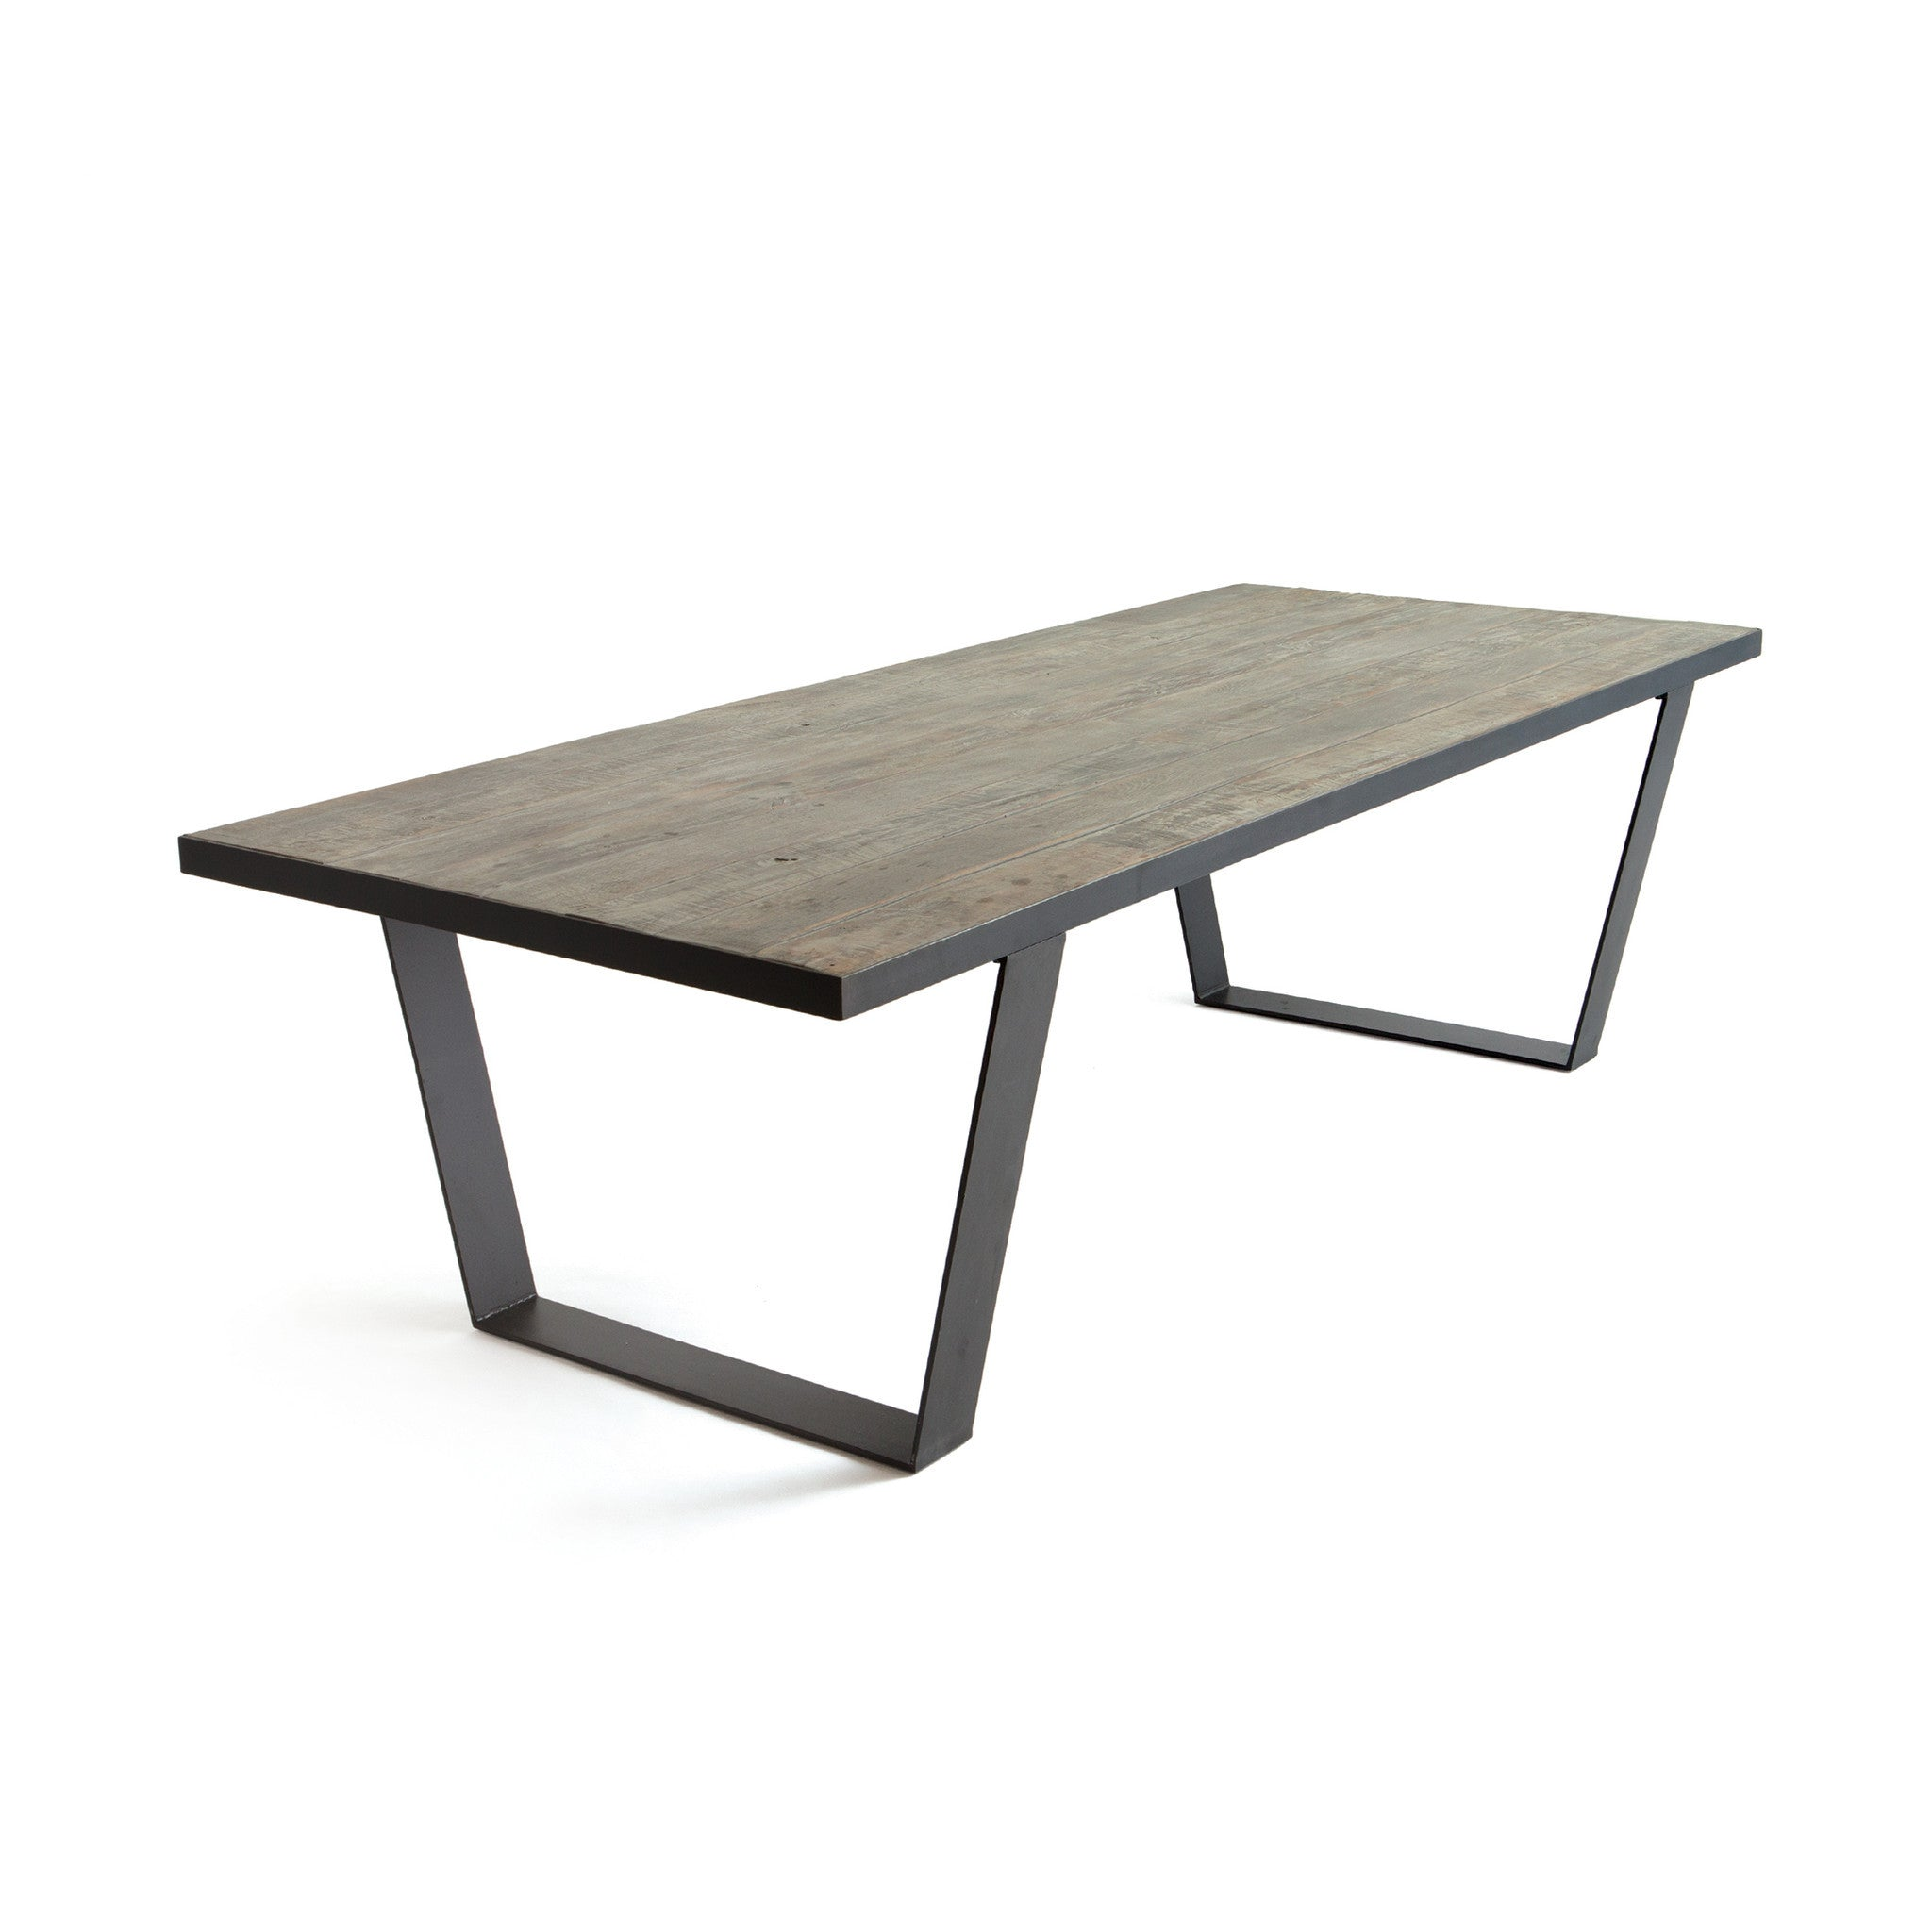 metal base dining table. Draper Dining Table With Matte Oak Wood Top On Black Metal Base-Dining Tables- Base